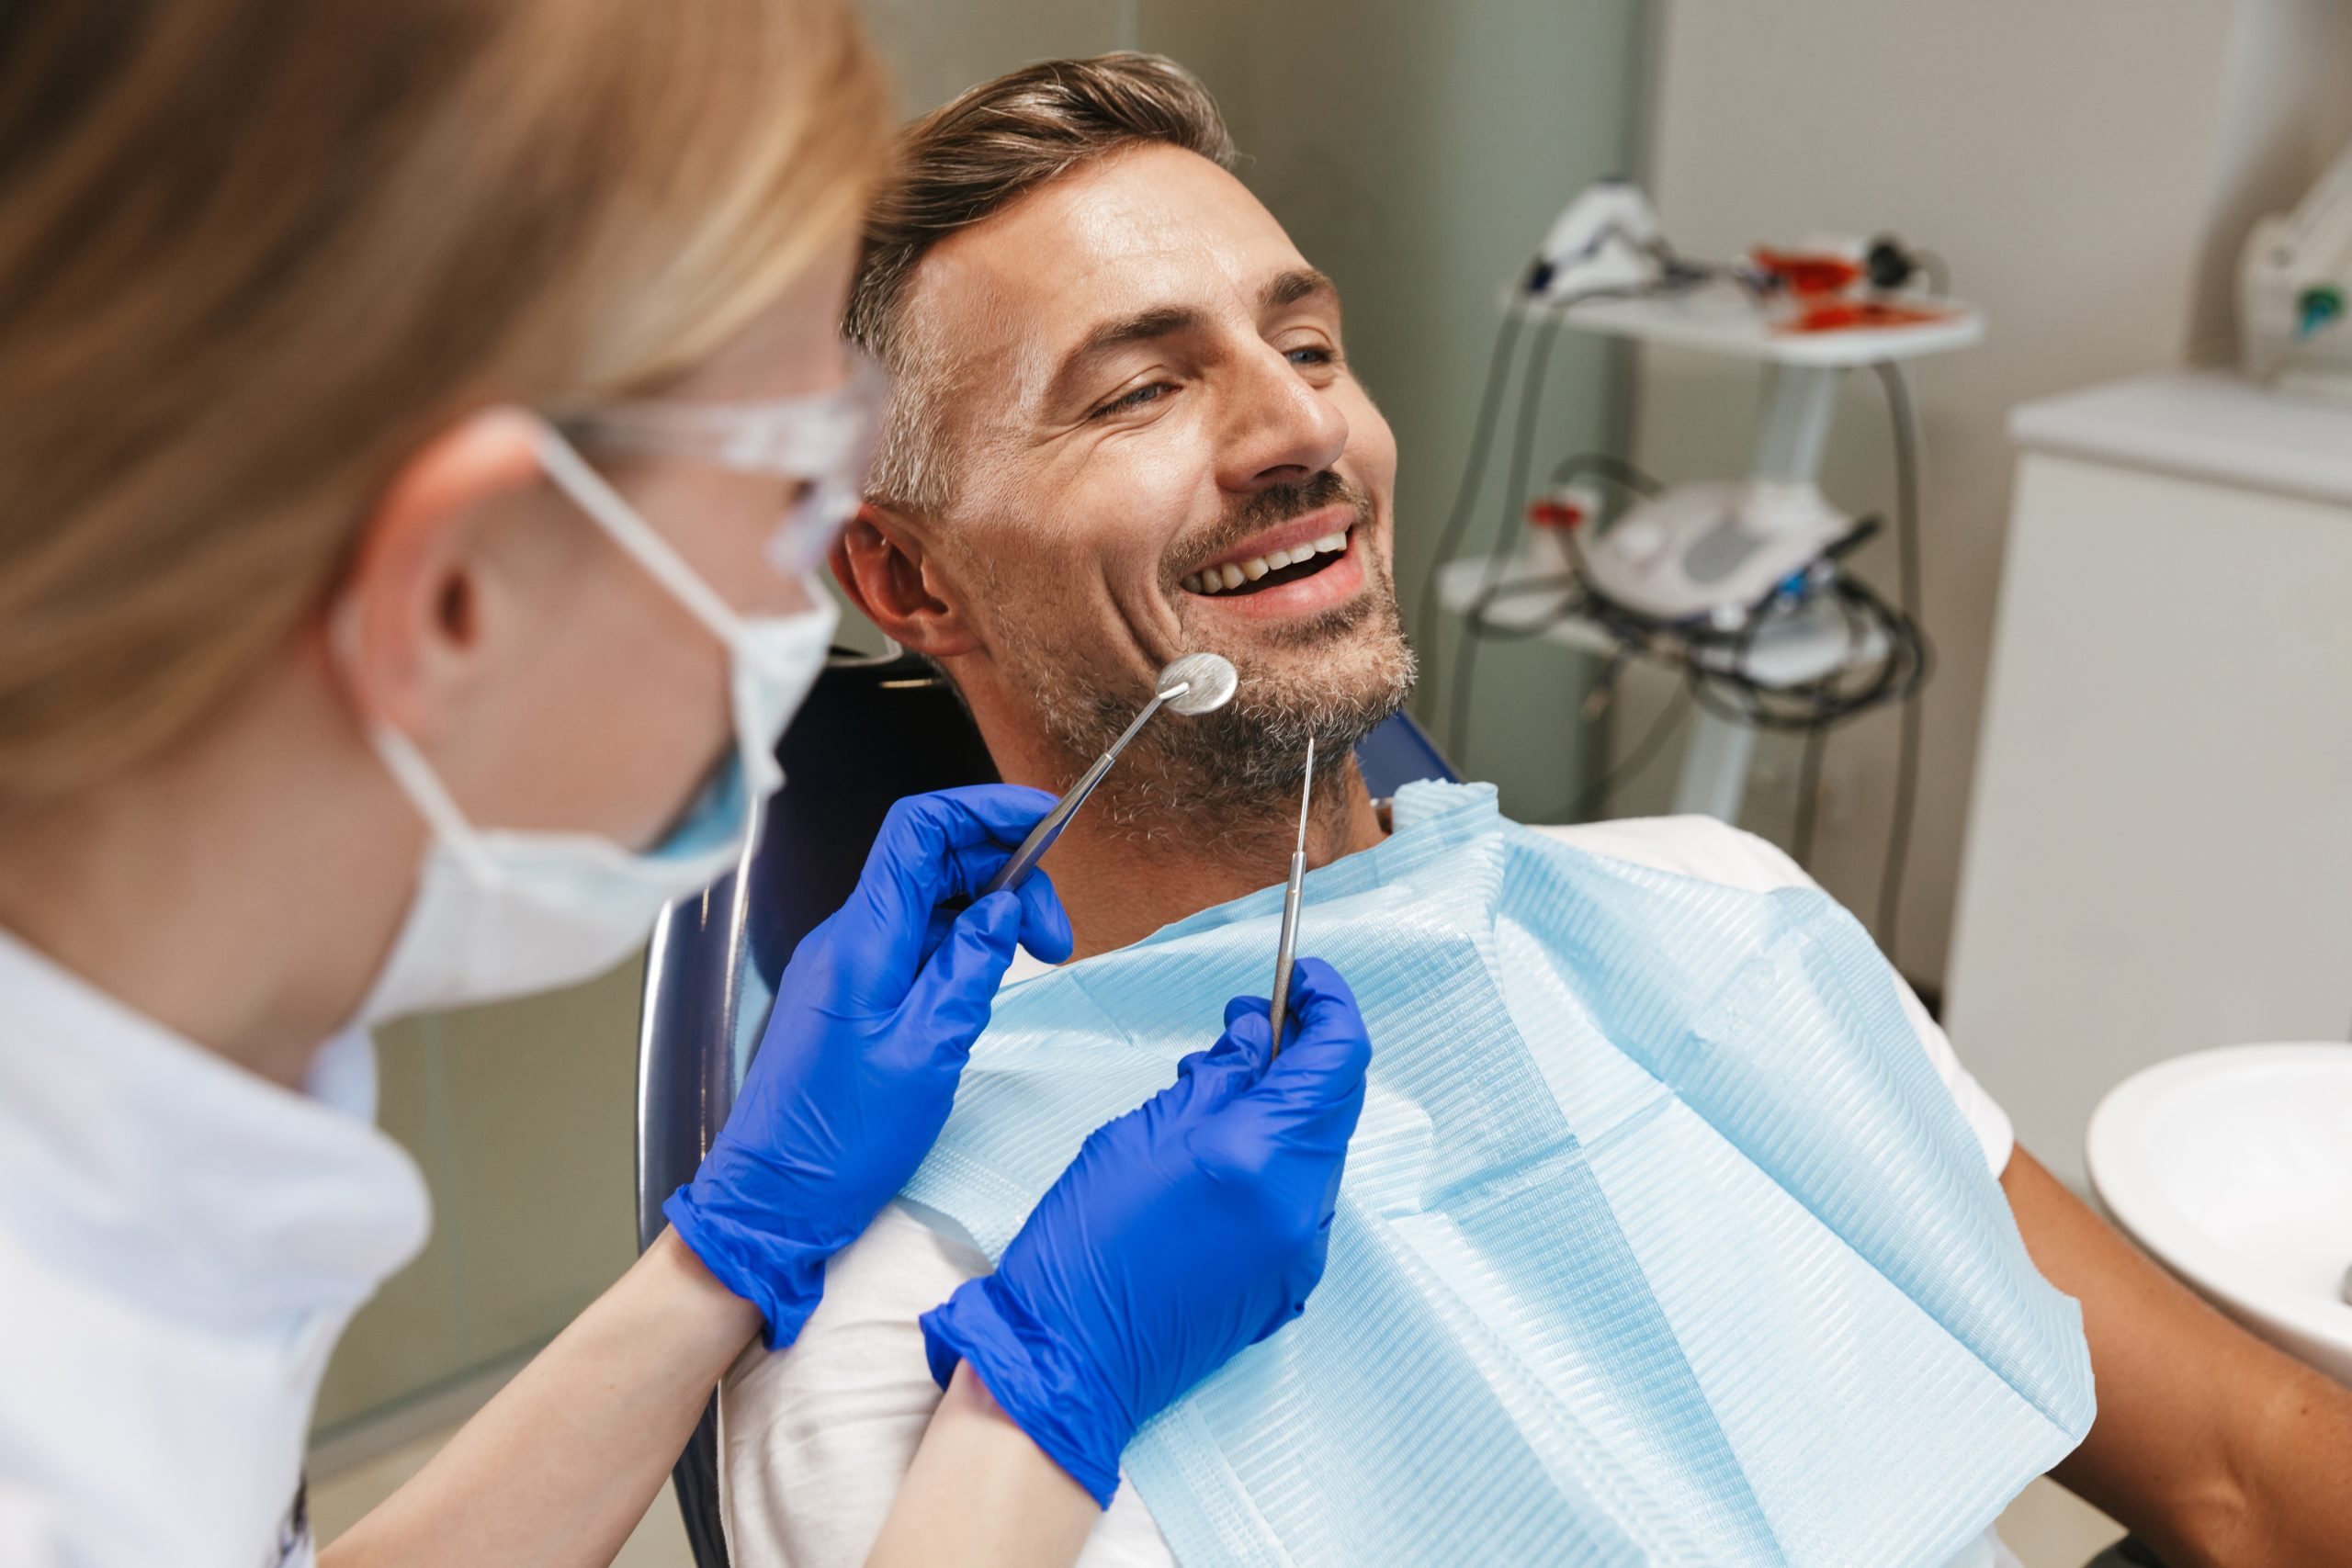 Why you might need a complete dental exam